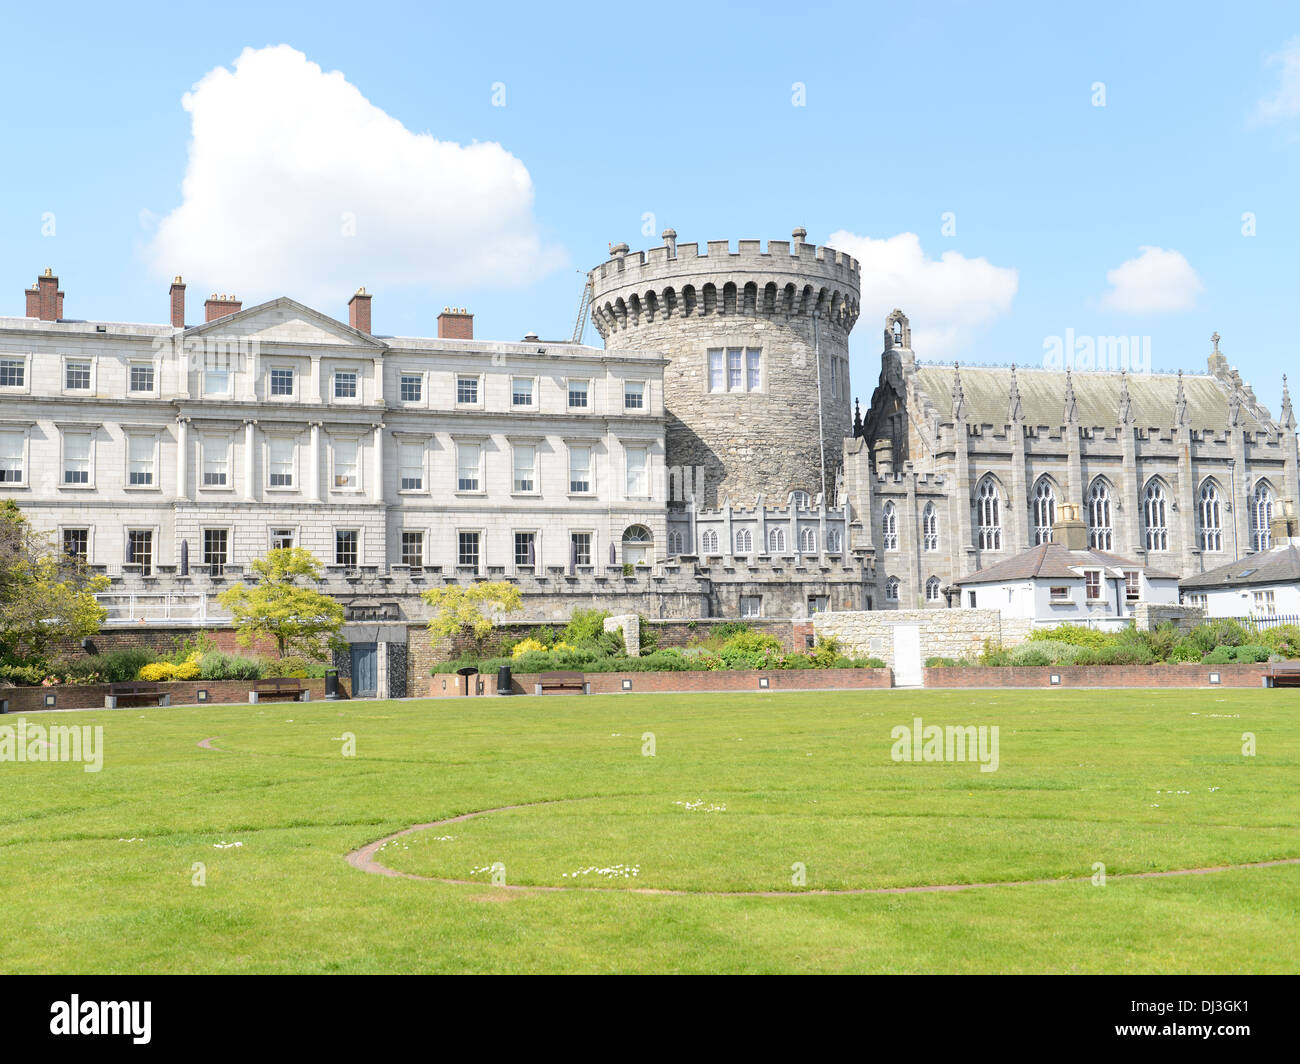 Dublin Castle with (big round) Record tower in Ireland. - Stock Image